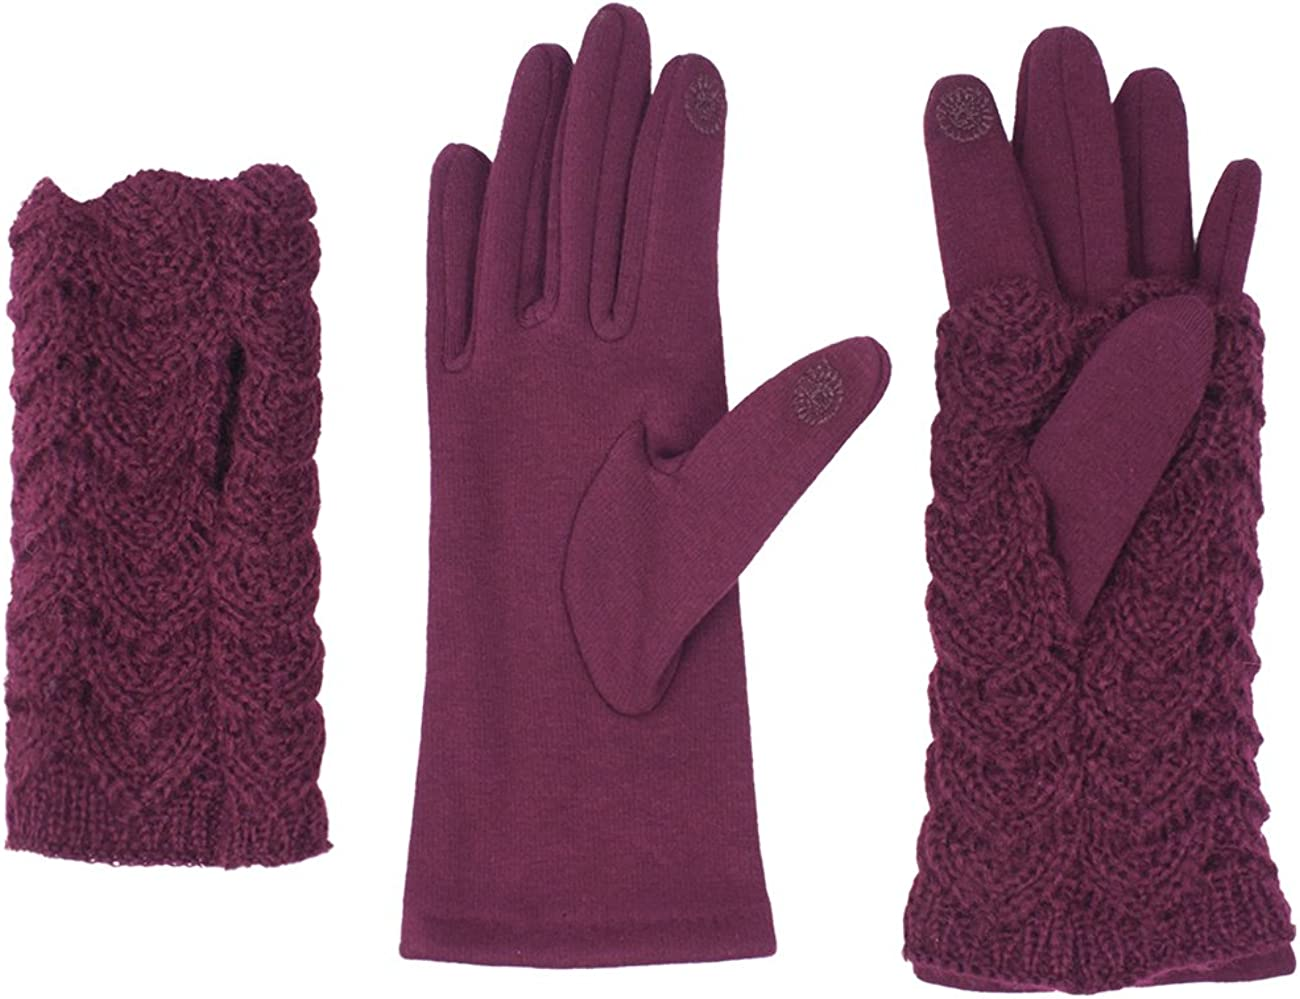 Dahlia 2 in 1 Touchscreen Gloves for Women - Fleece Lined with Hand Warmers